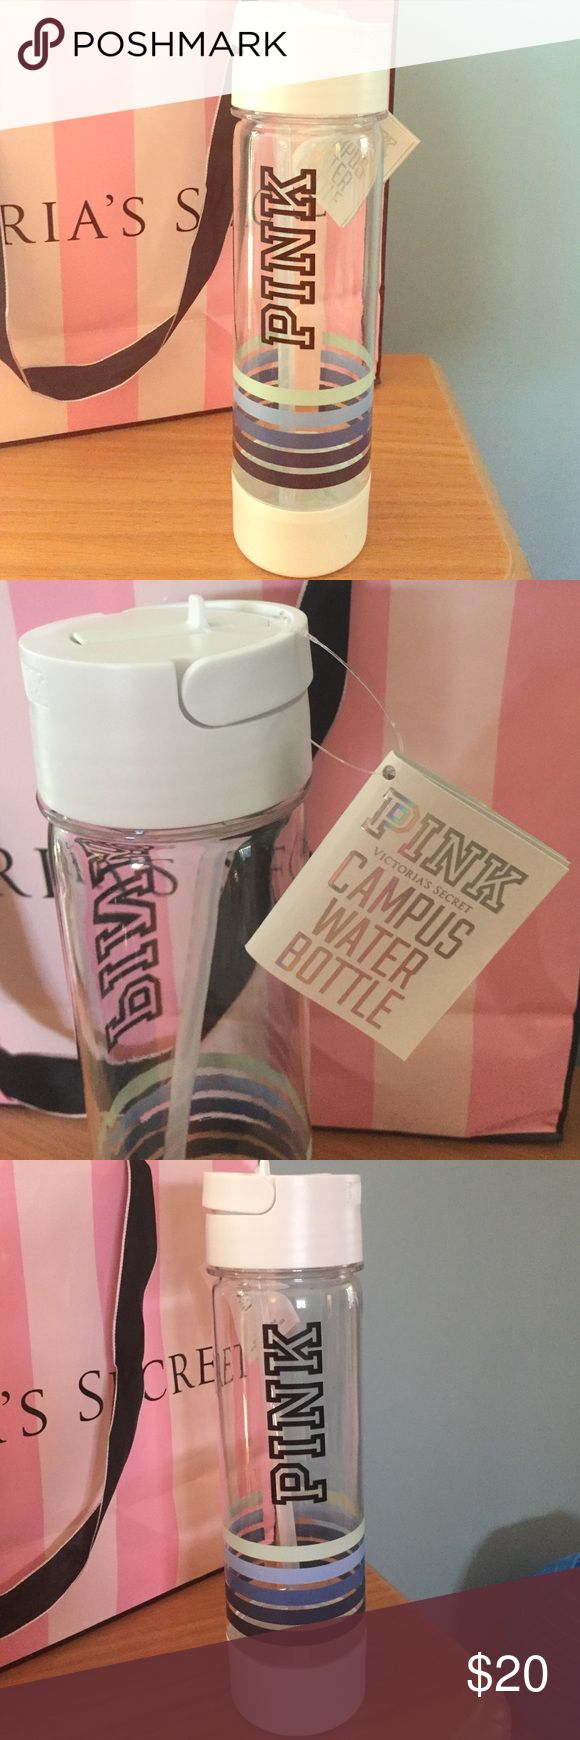 Victoria's Secret Pink water bottle NWT VS Pink water bottle clear with stripes.  Perfect gift for those early Christmas shoppers!  Sells for $16.95 online-great deal 👍🏻 PINK Victoria's Secret Other